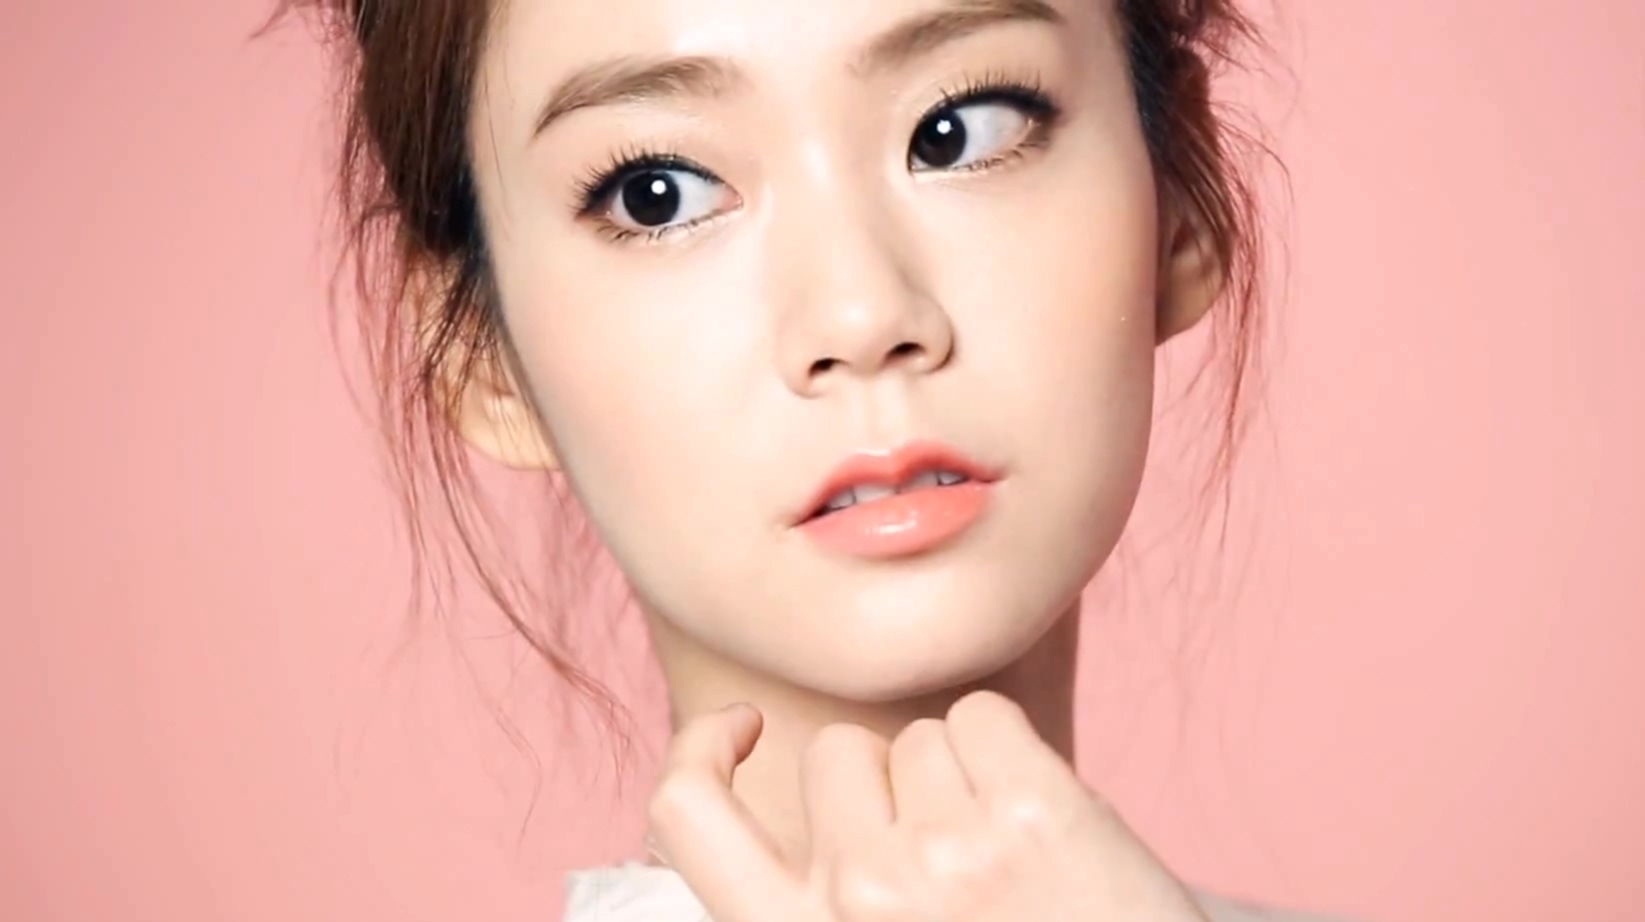 Han Seung Yeon To Headline Web Movie About A Gigantic Insect Attack